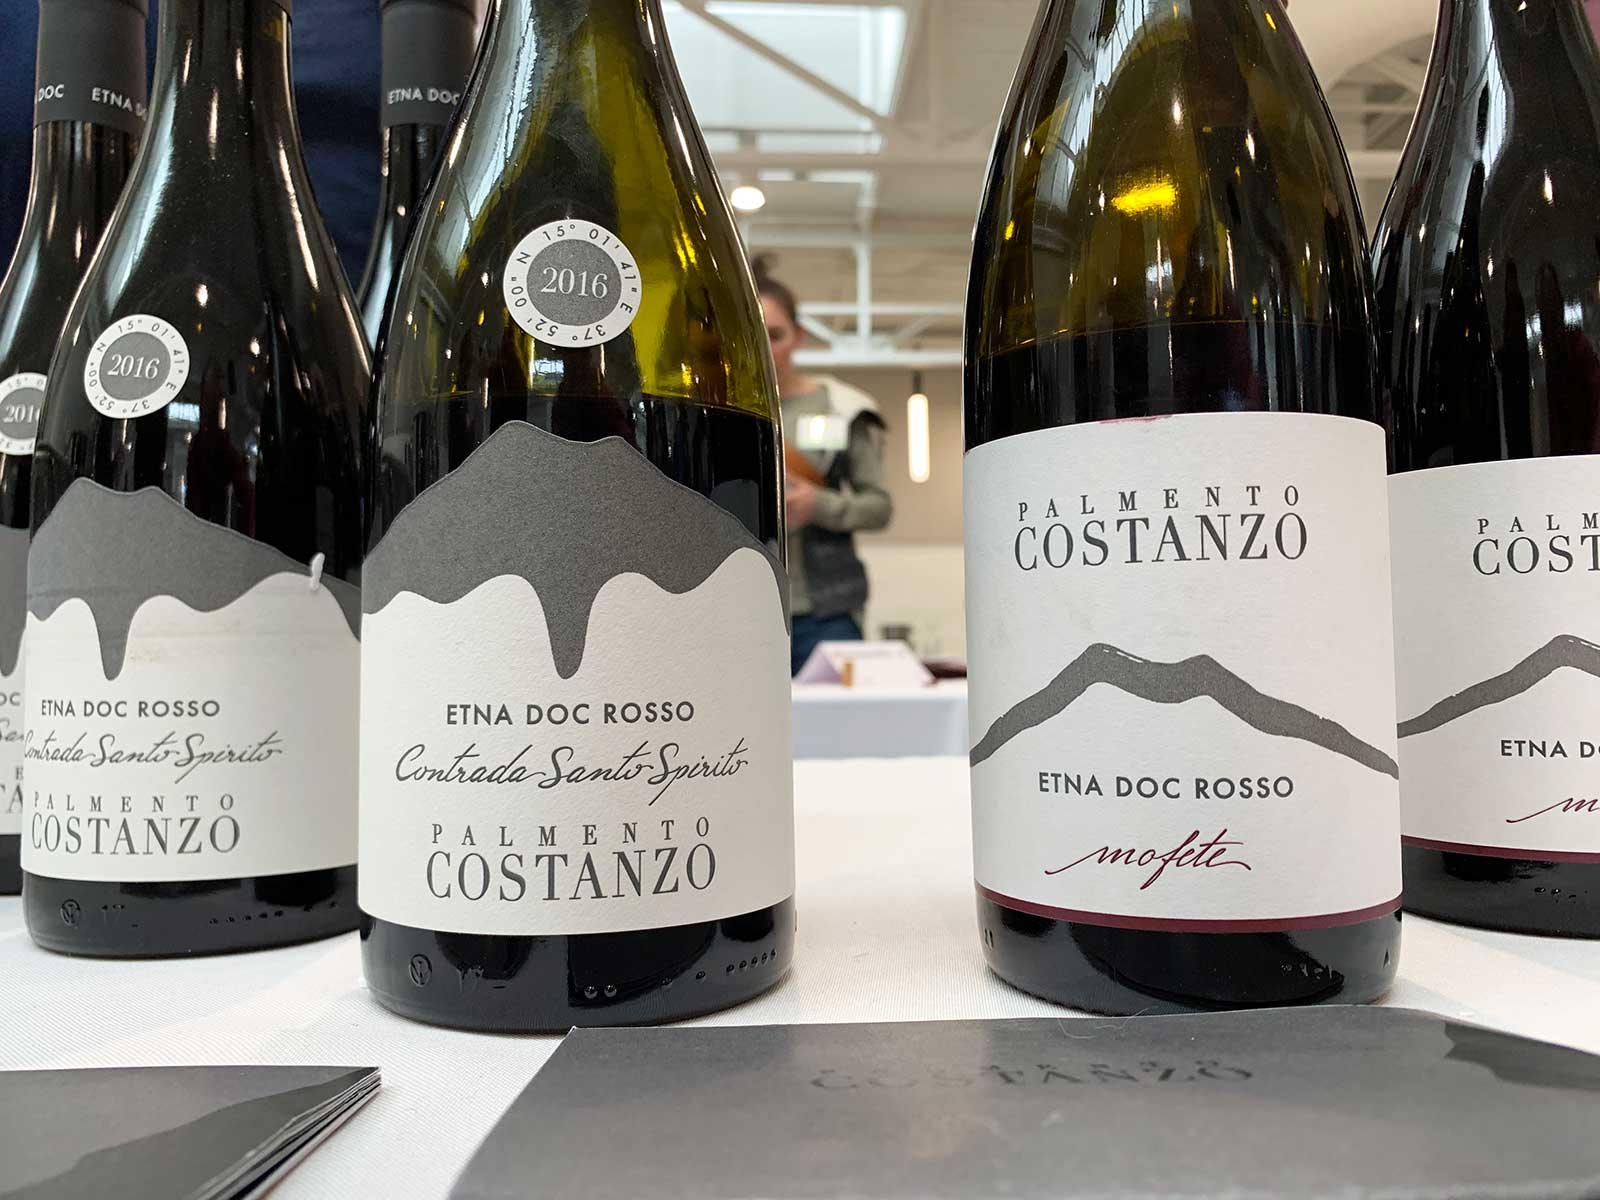 Palmento Costanzo was a new producer to me, and I'm glad I got to sample their smoky, scintillating wines. ©Kevin Day/Opening a Bottle